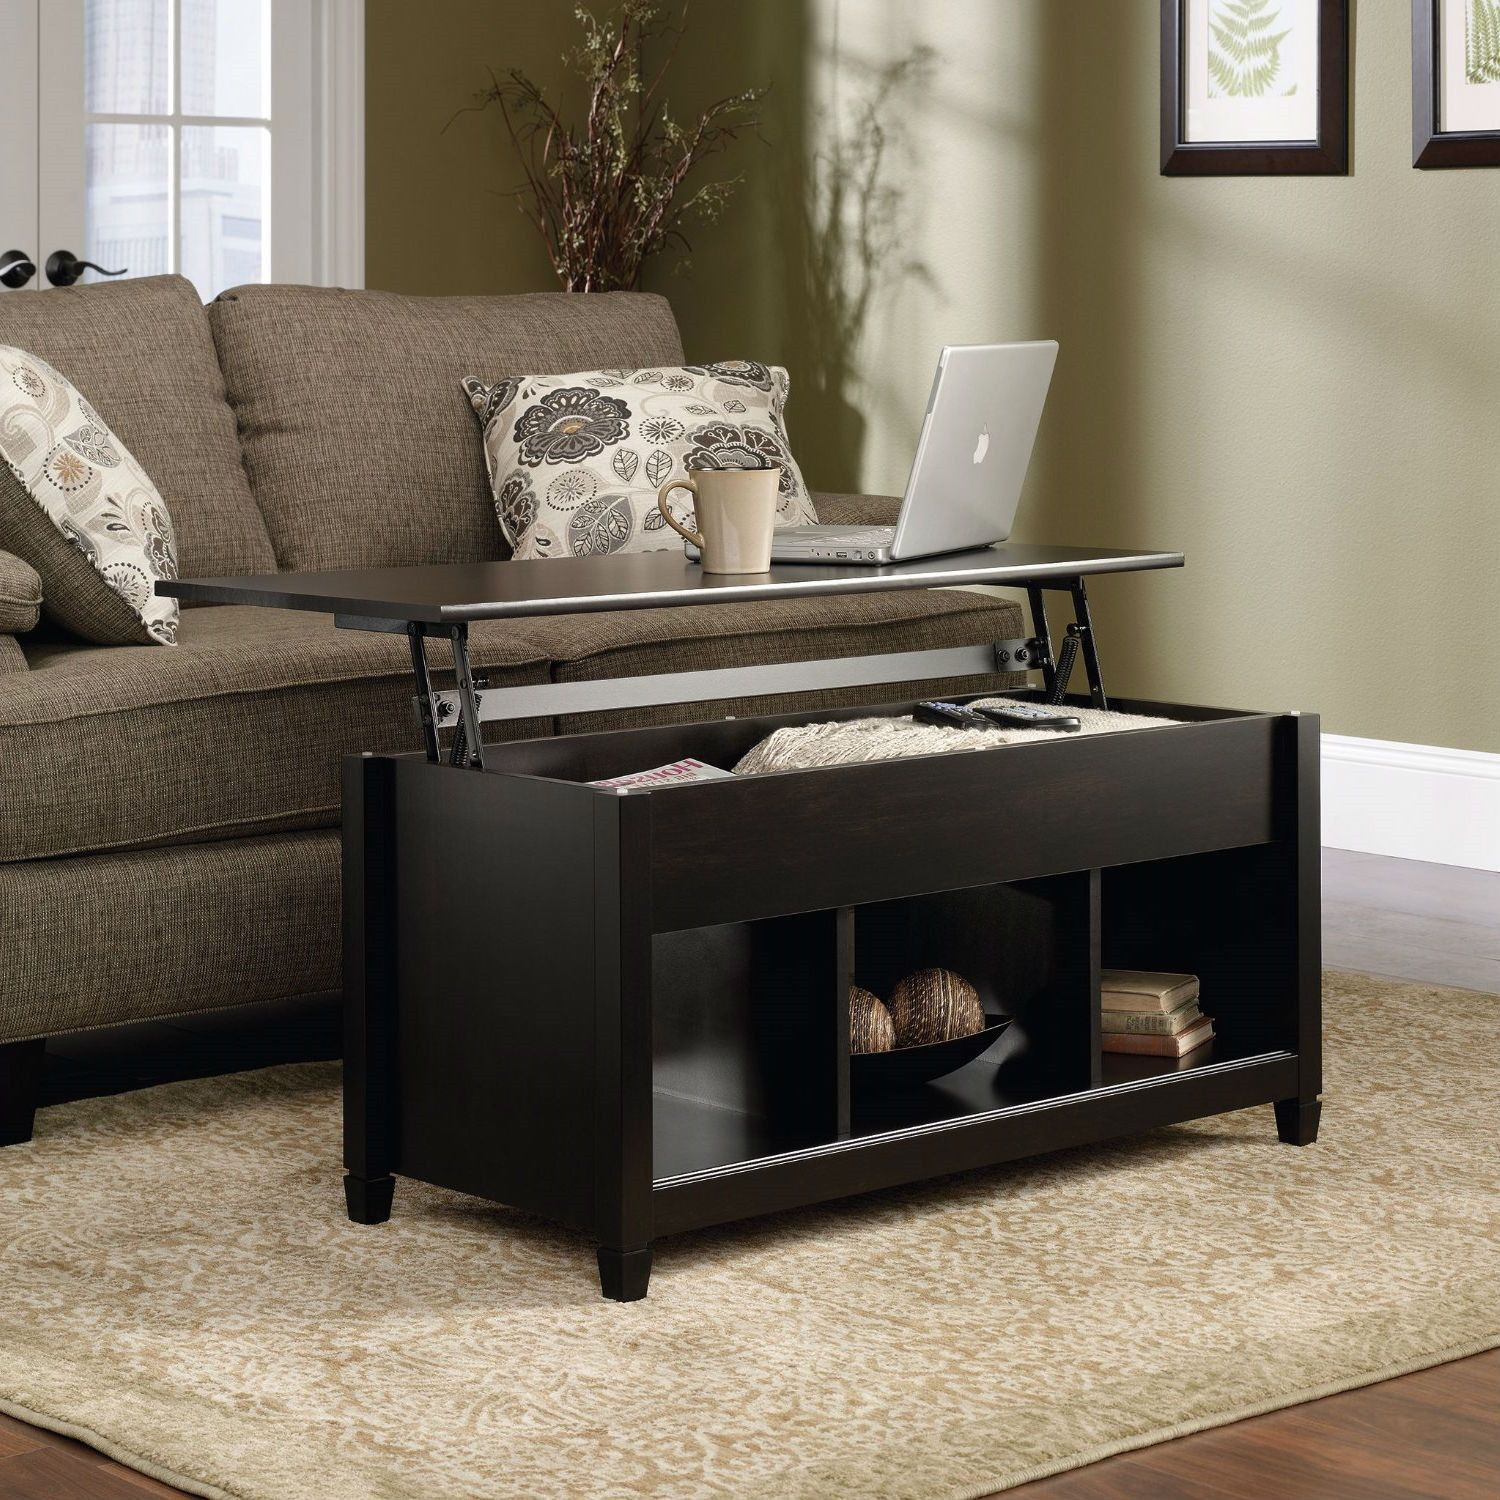 Black Wood Finish Lift Top Coffee Table With Bottom Storage Space Hearts Attic Coffee Table With Storage Furniture Living Room Furniture